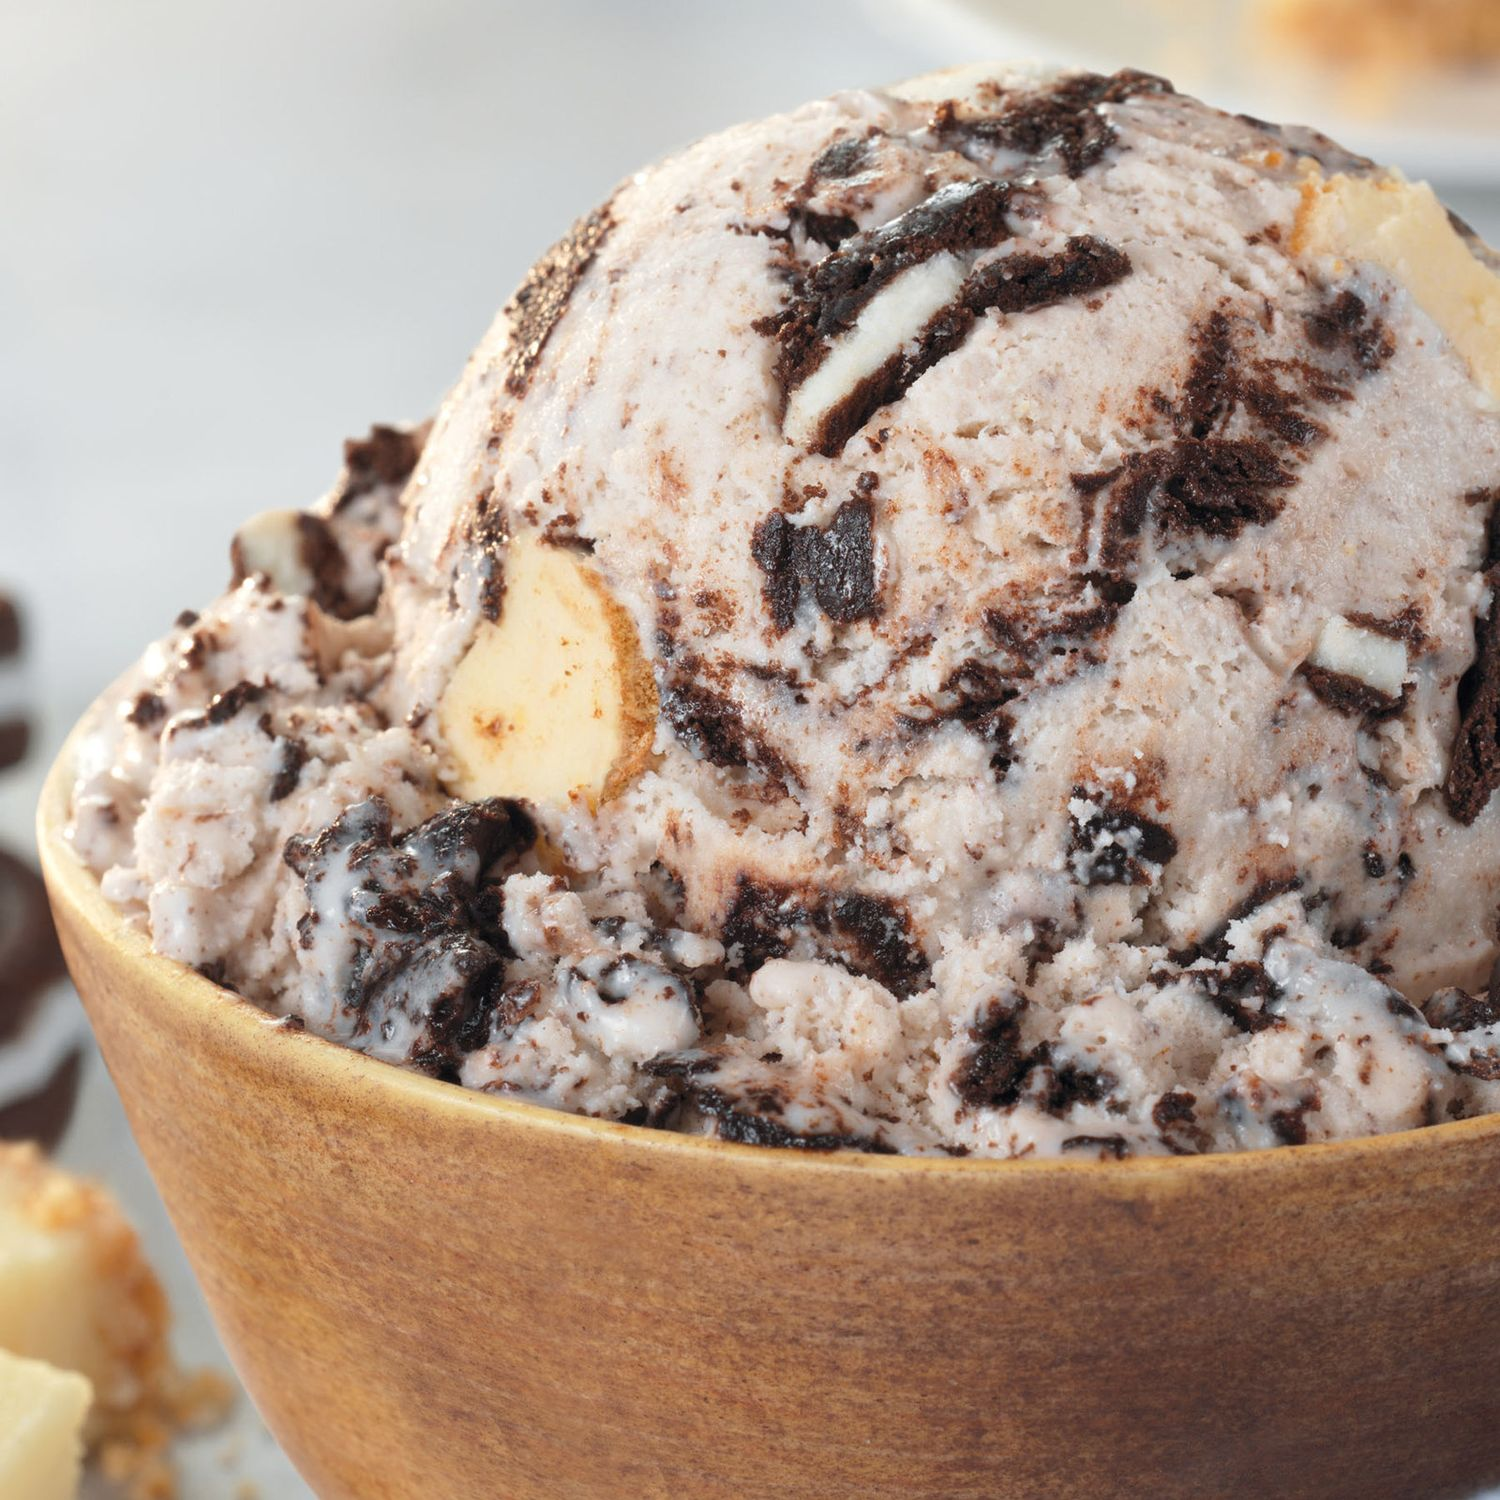 Baskin-Robbins Celebrates the Coolest Food Holidays this August and Introduces New OREO Cheesecake Flavor of the Month